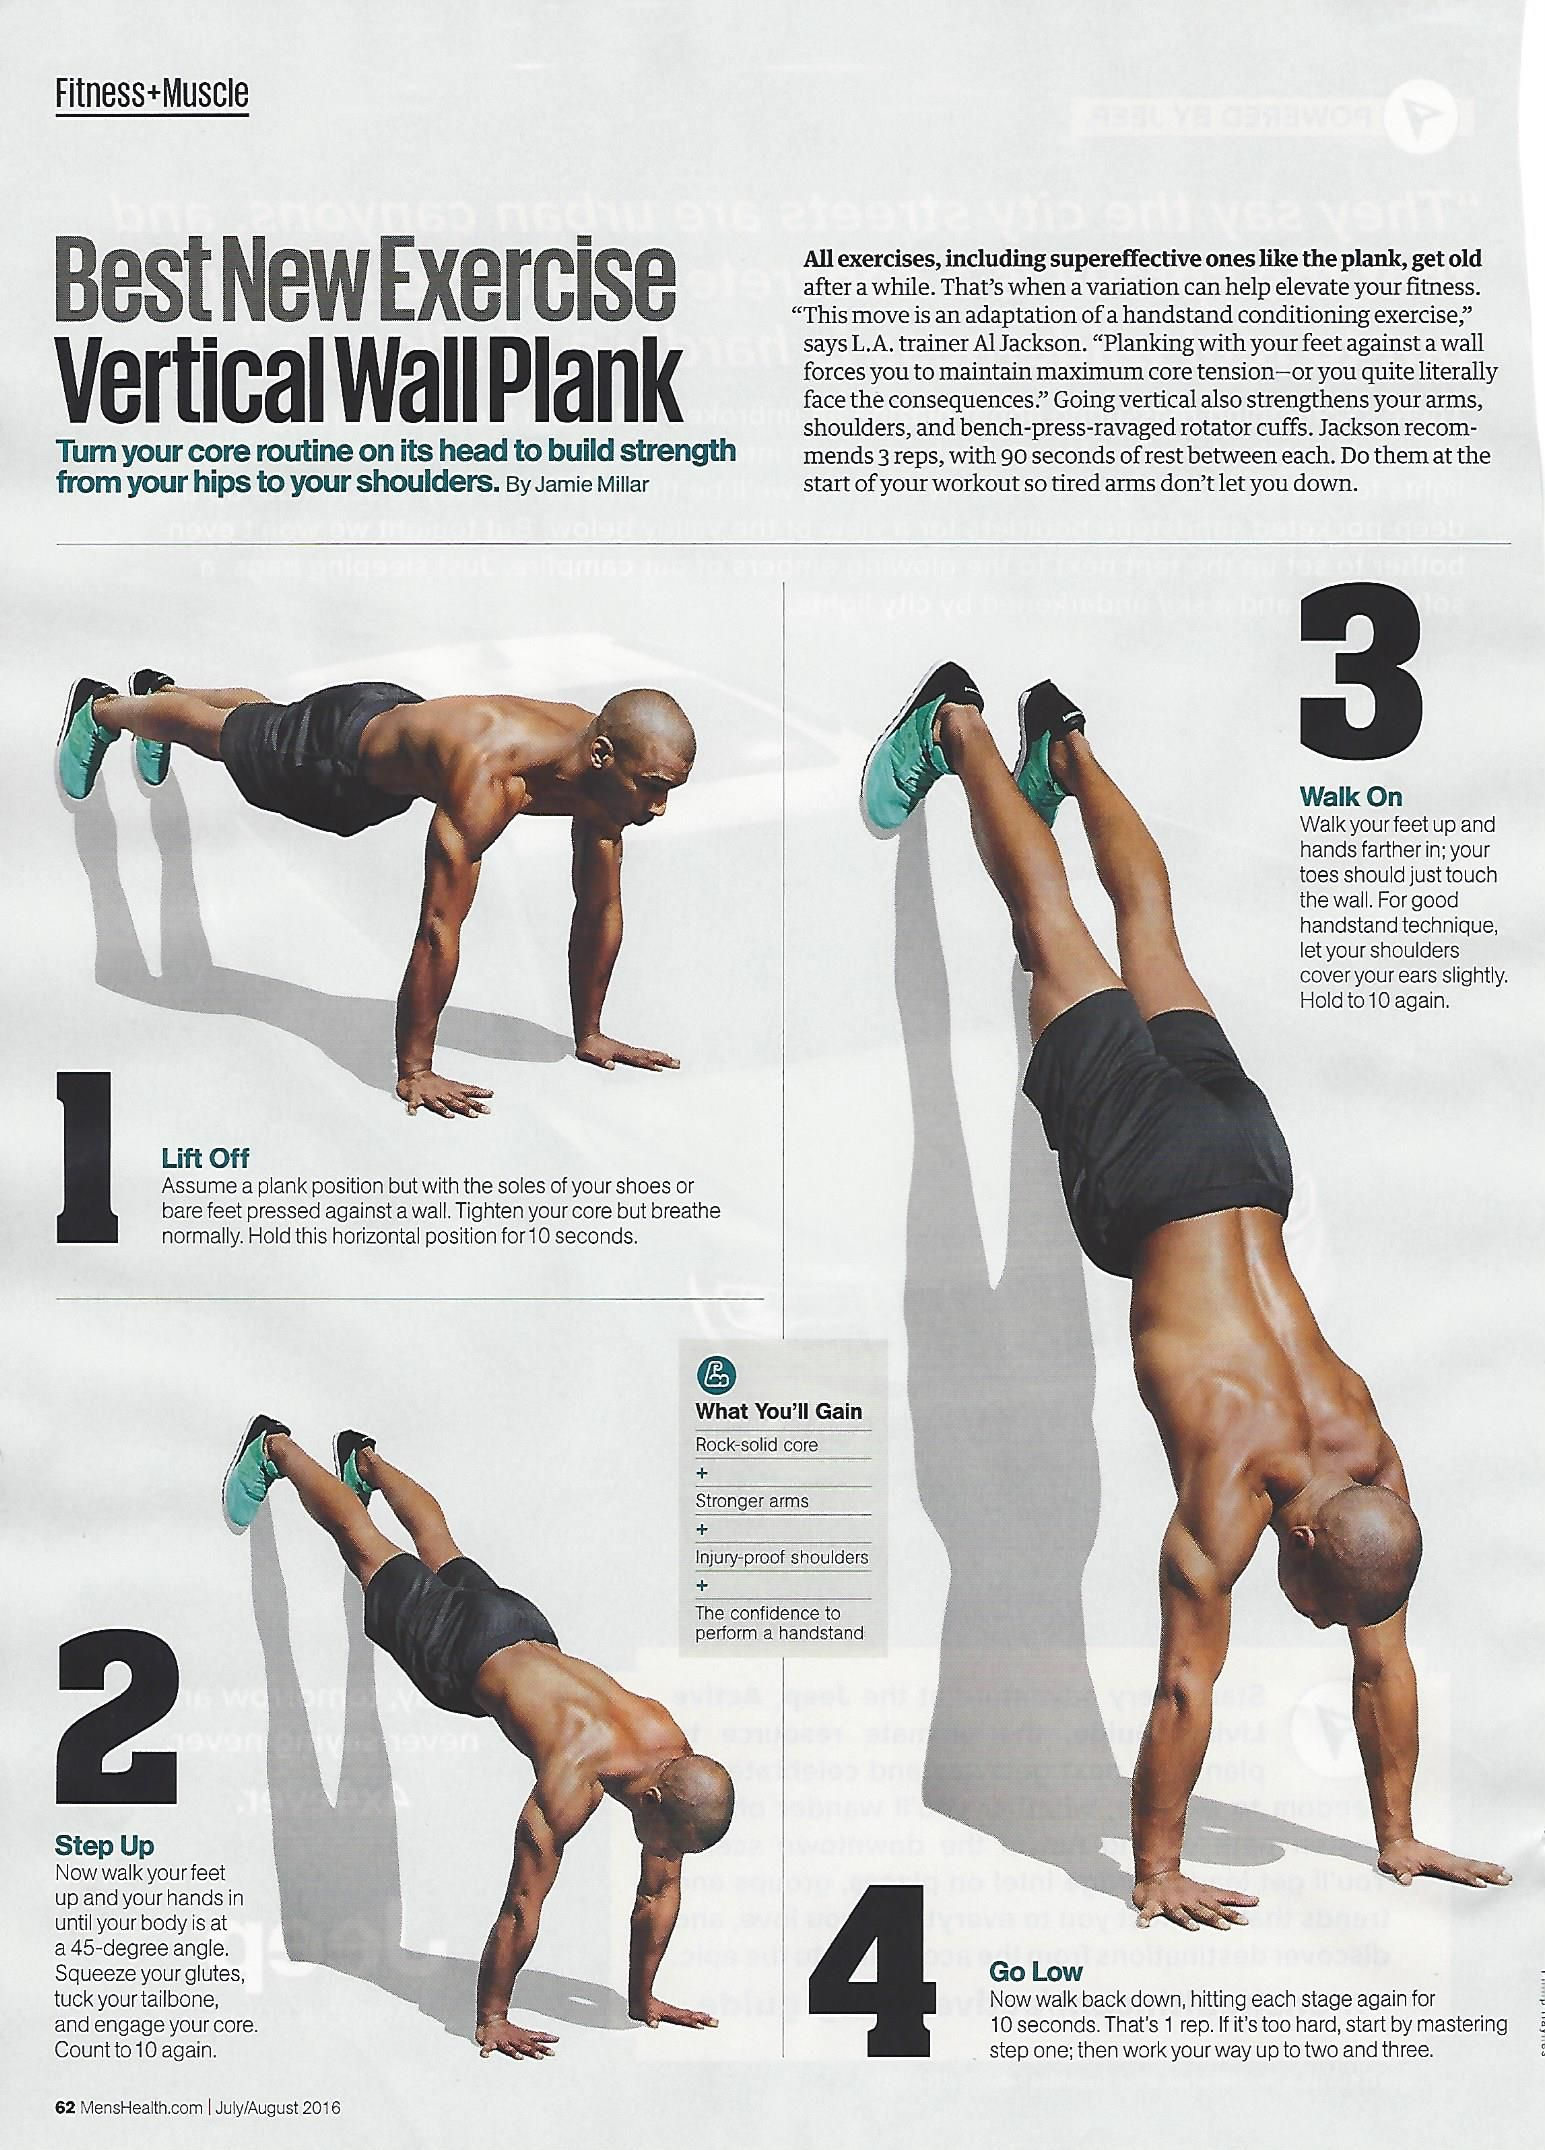 "@menshealthmag ""wall plank"" from trainer Al Jackson"